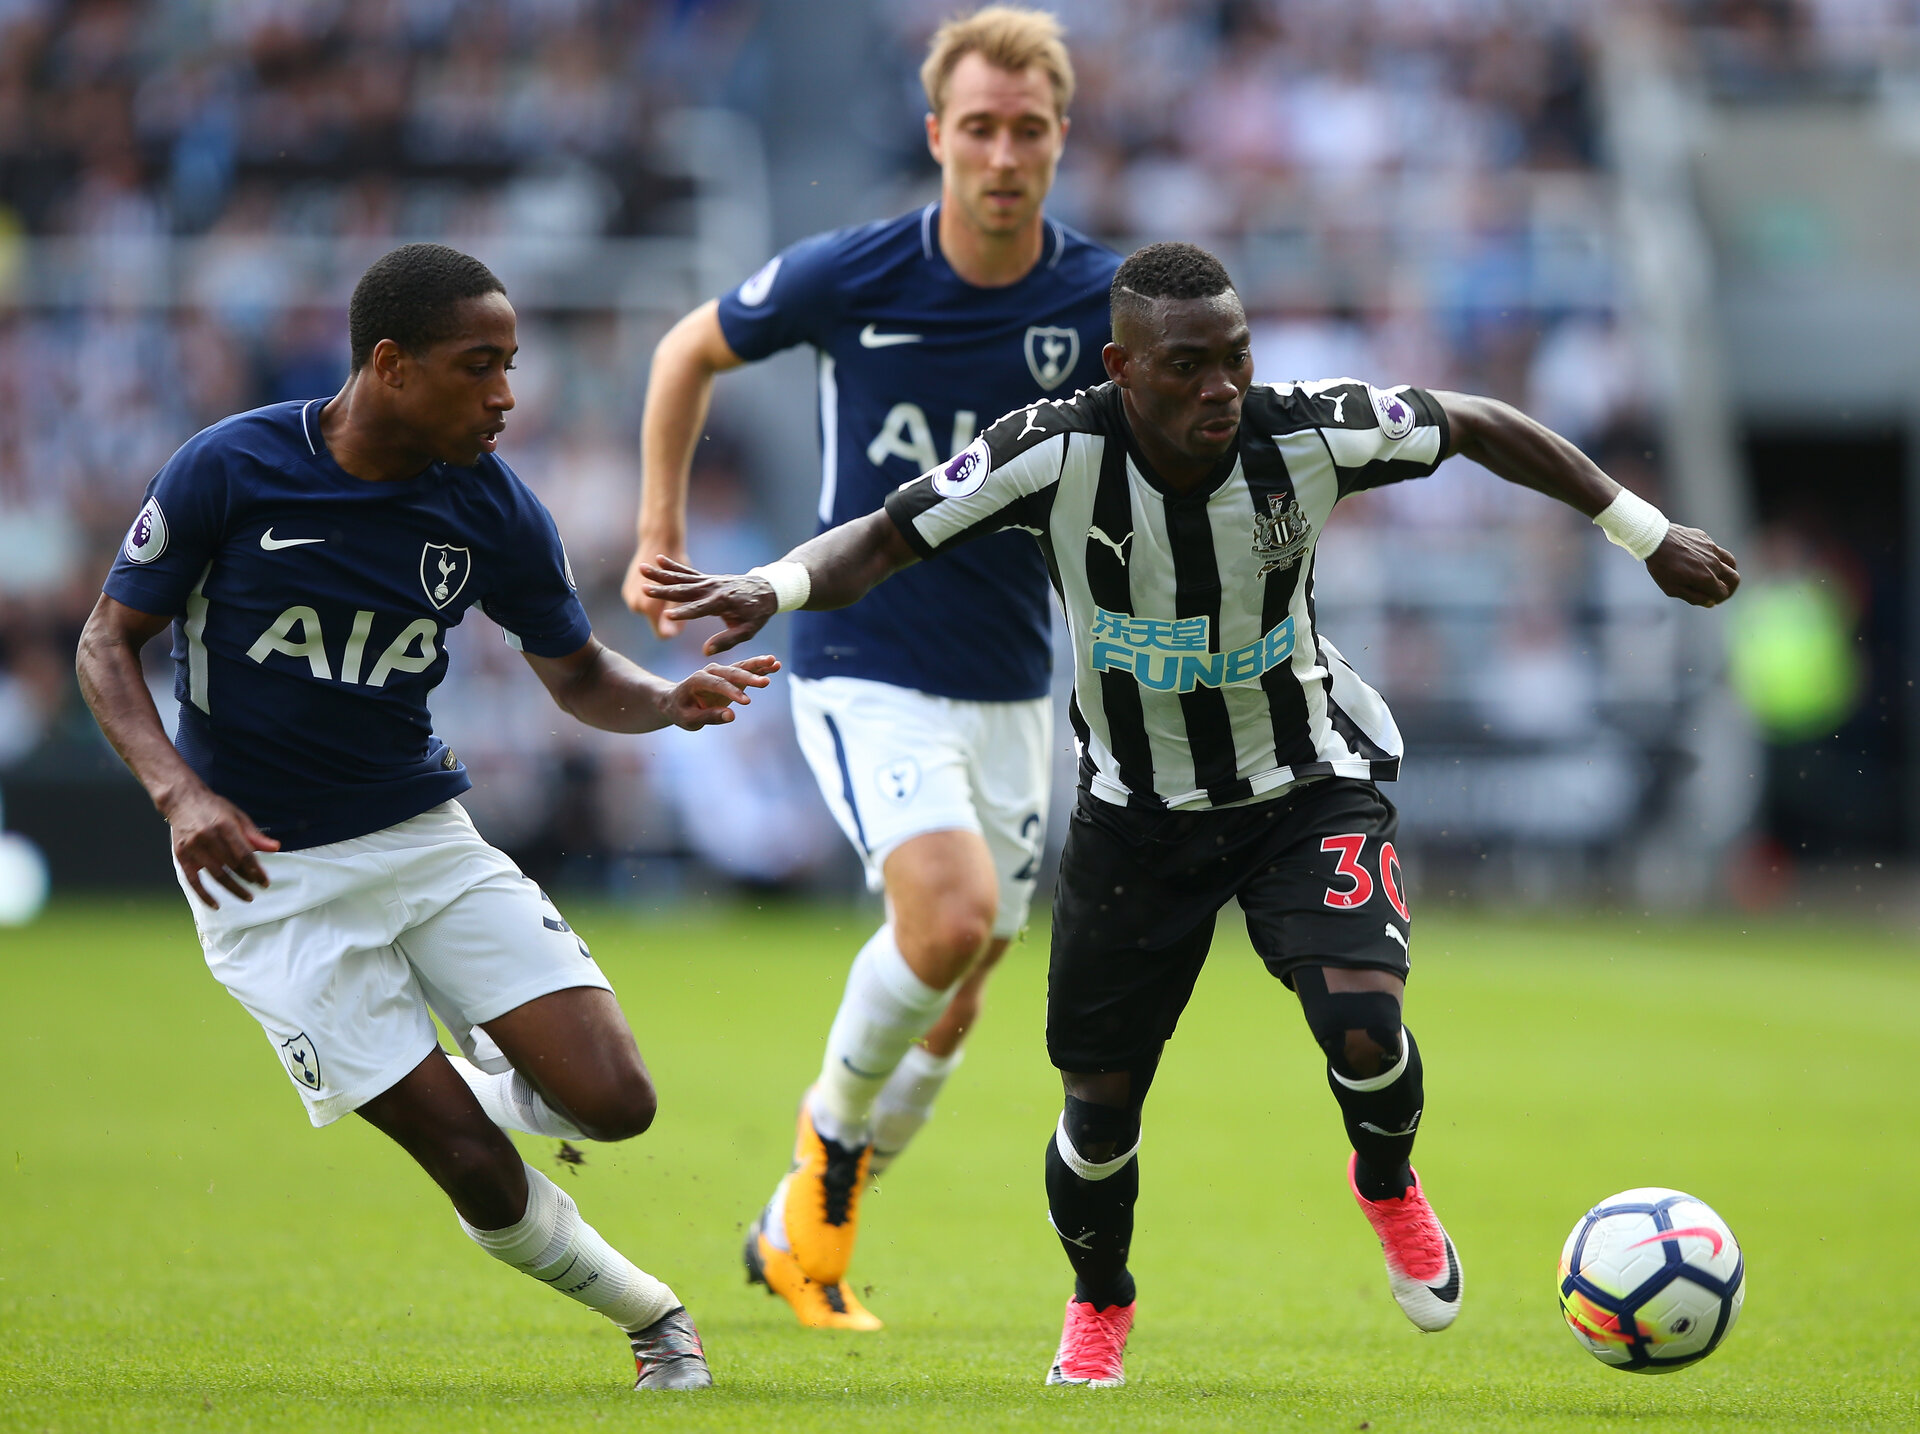 NEWCASTLE UPON TYNE, ENGLAND - AUGUST 13:  Christian Atsu of Newcastle United and Kyle Walker-Peters of Tottenham Hotspur battle for possession during the Premier League match between Newcastle United and Tottenham Hotspur at St. James Park on August 13, 2017 in Newcastle upon Tyne, England.  (Photo by Alex Livesey/Getty Images)